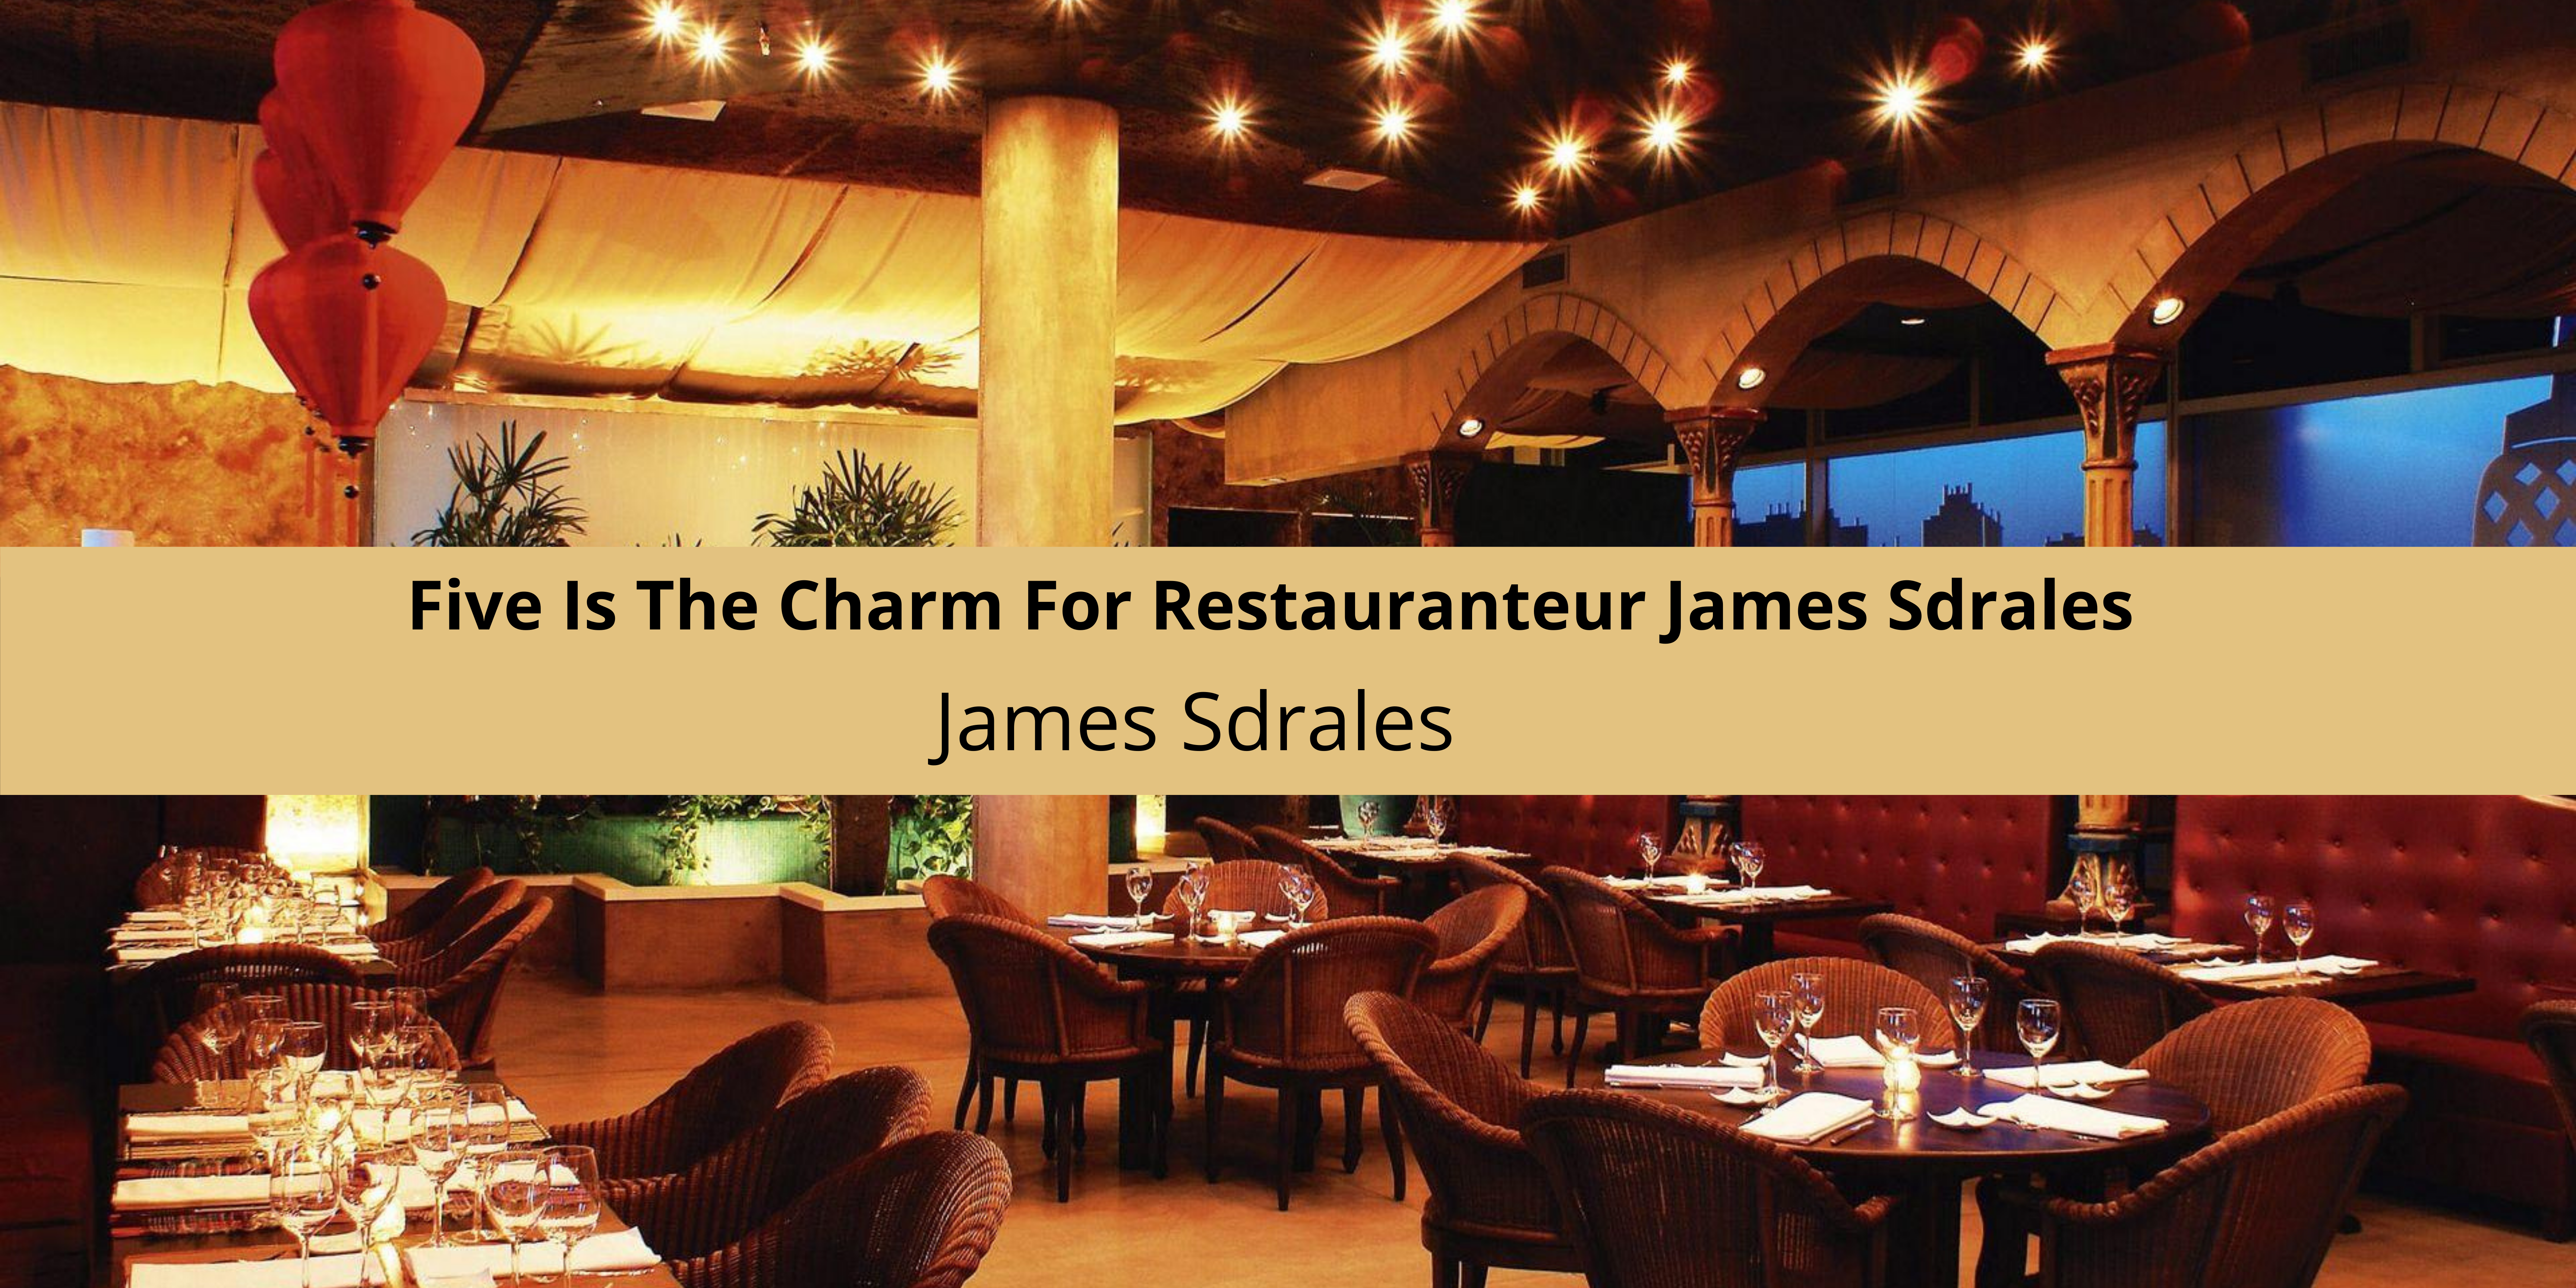 Five Is The Charm For Restauranteur James Sdrales